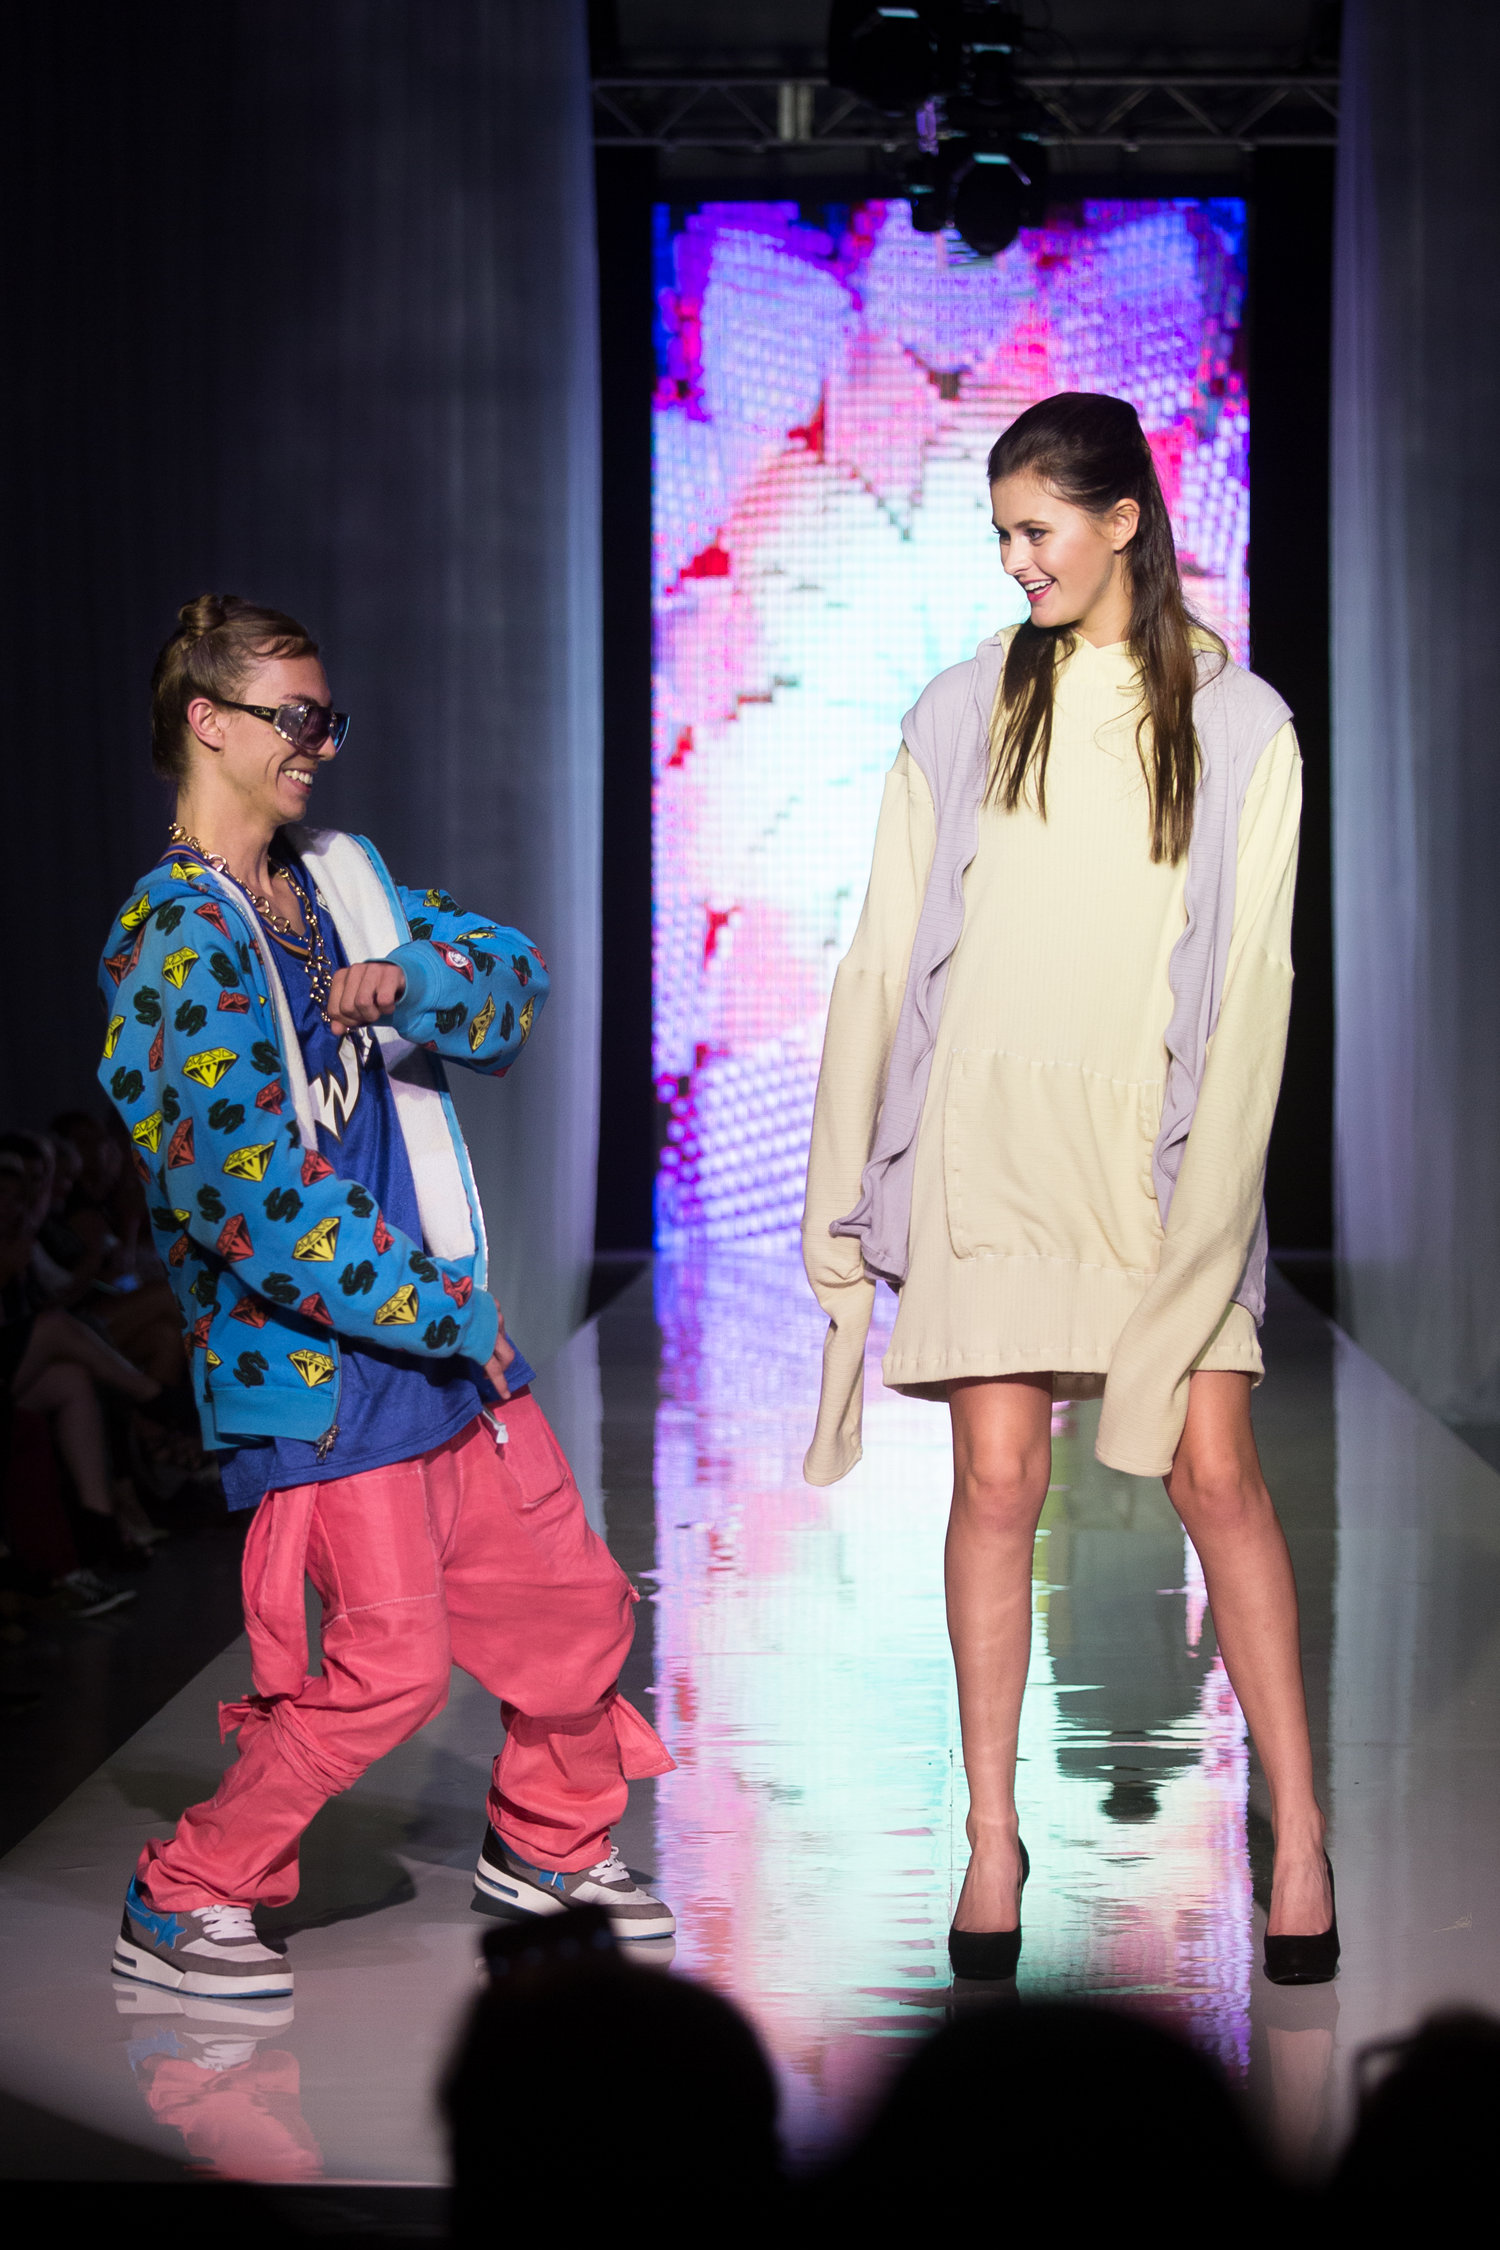 Christopher Di Giorgio S/S 2017 - Christopher making his Spring/Summer 2017 debut at Omaha Fashion Week.